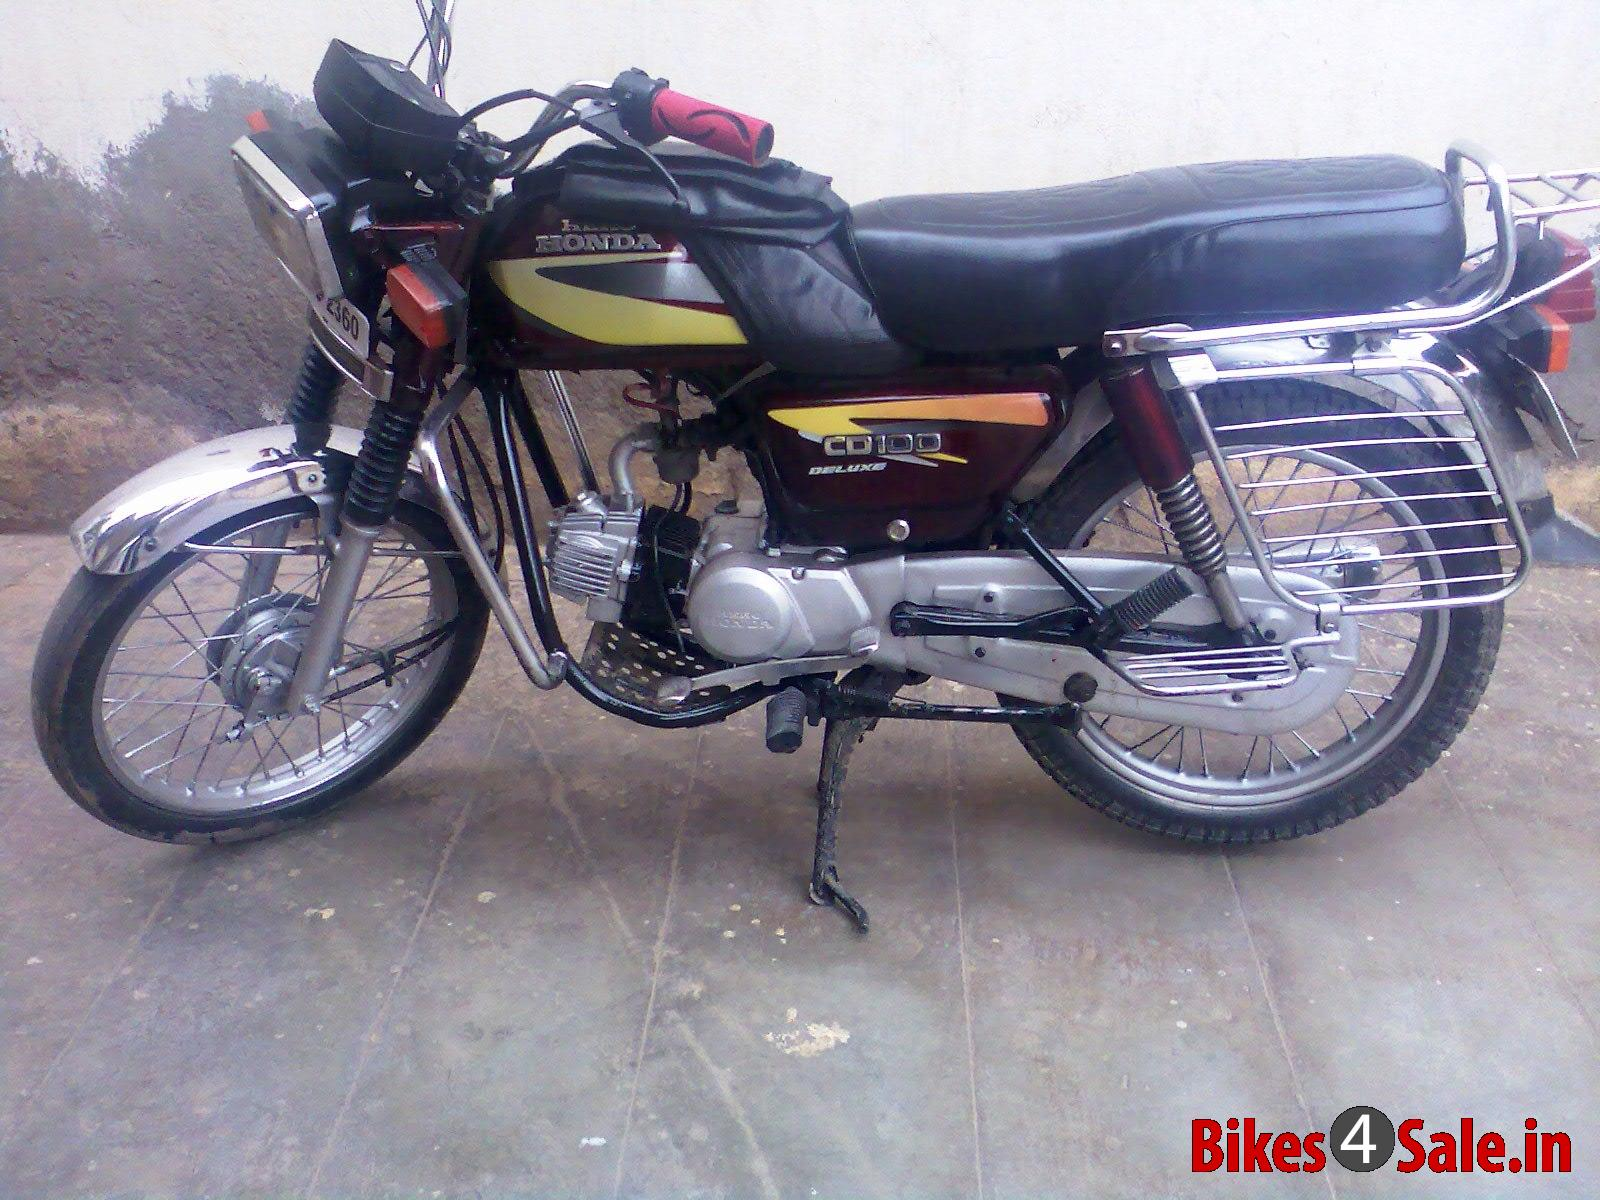 Hero Honda CD 100 SS images #74841